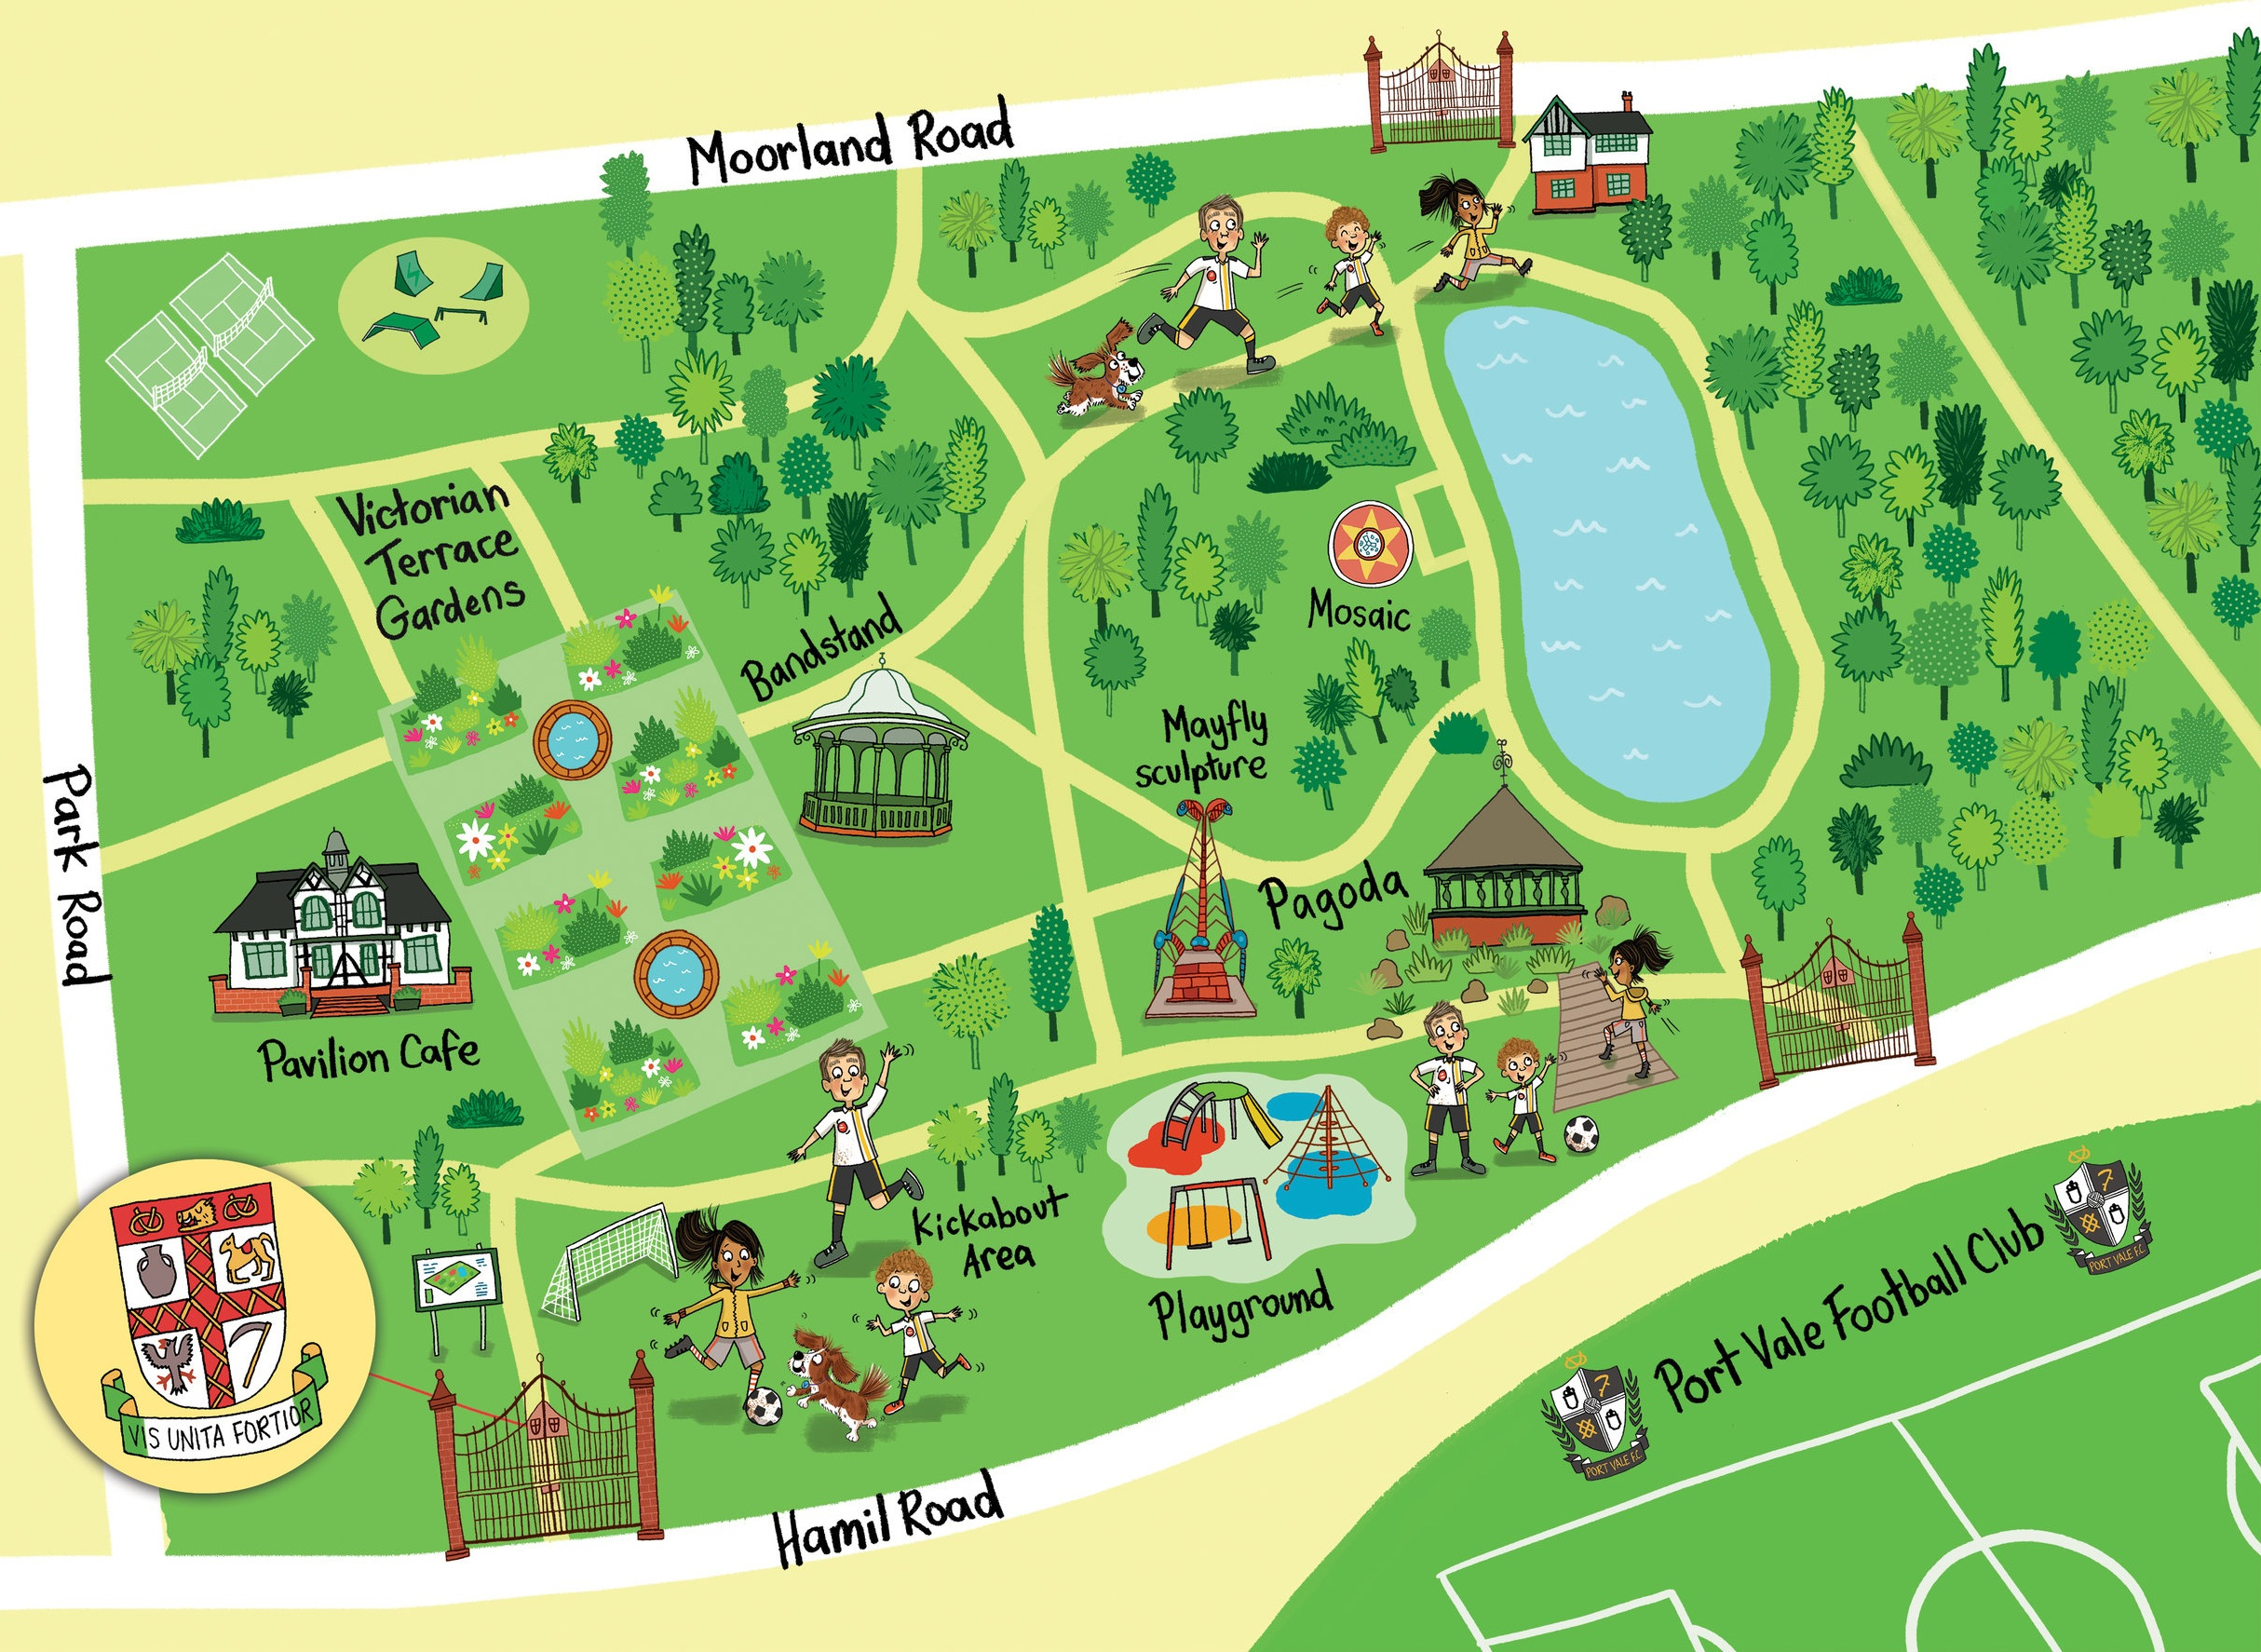 Burslem Park in Stoke - one of the six trail maps to get for free this summer!